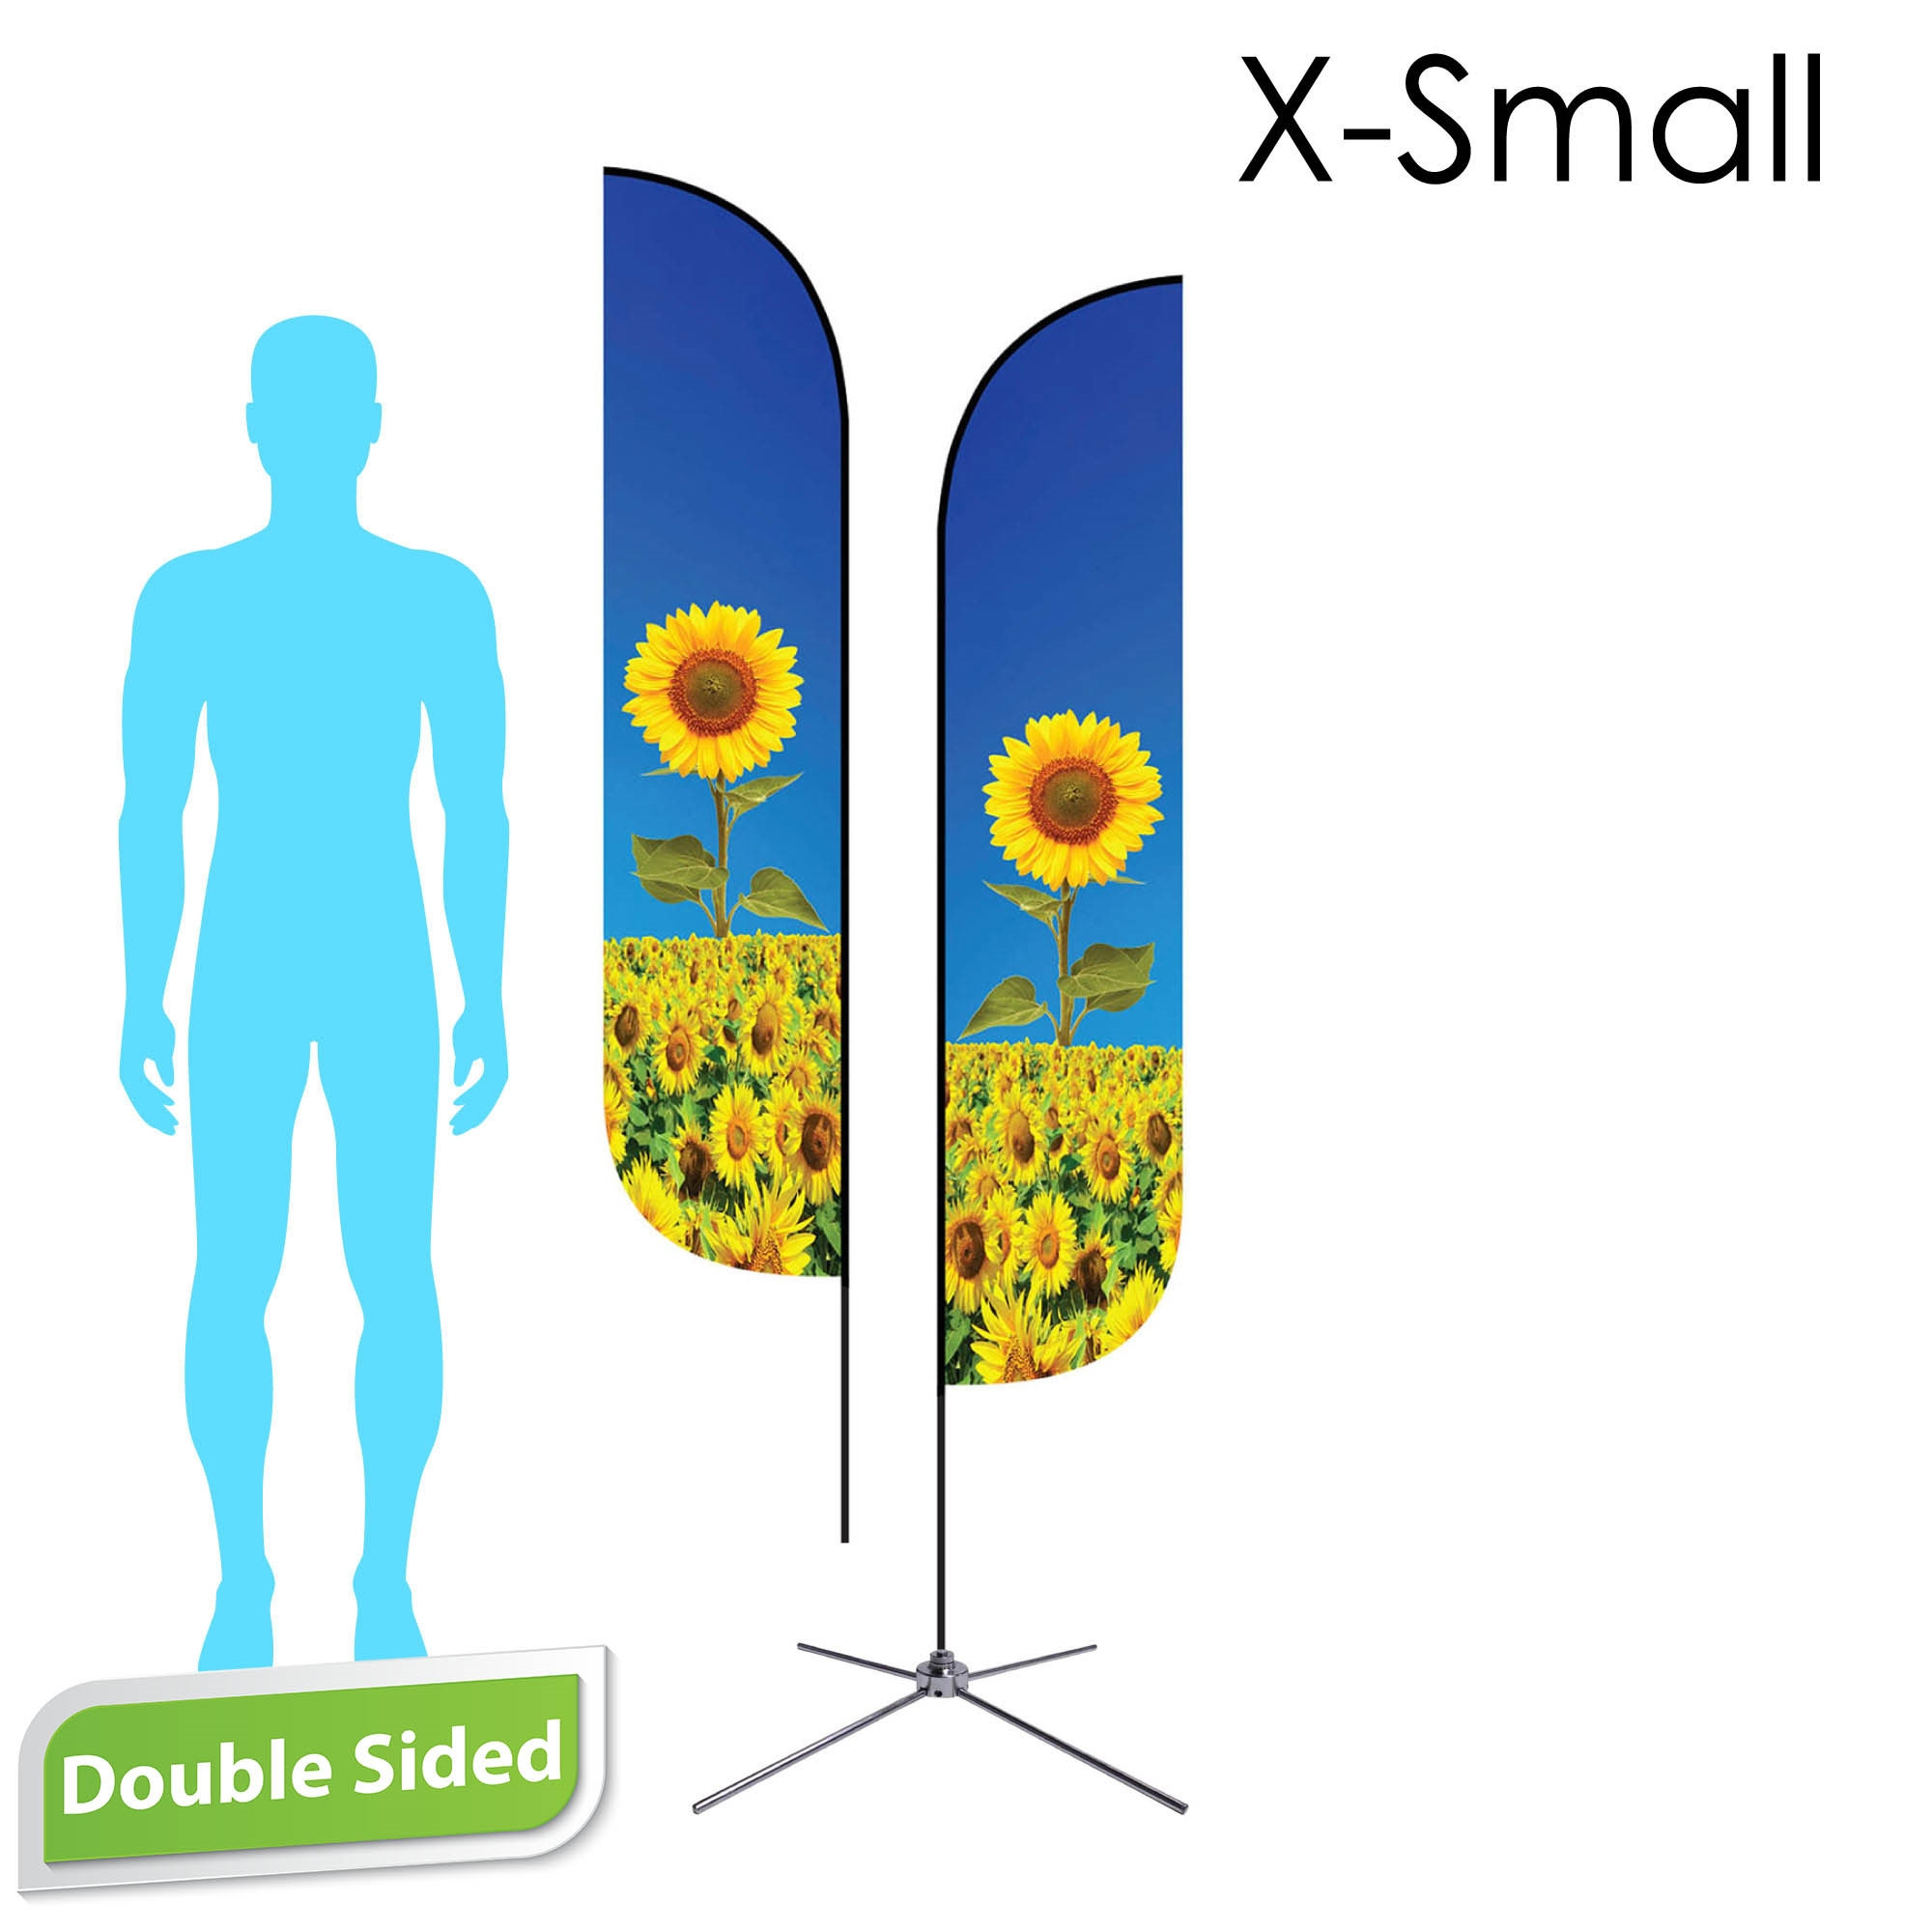 Feather Flag 7' Premium Double-Sided With Chrome X-Base & Carry Bag (X-Small)